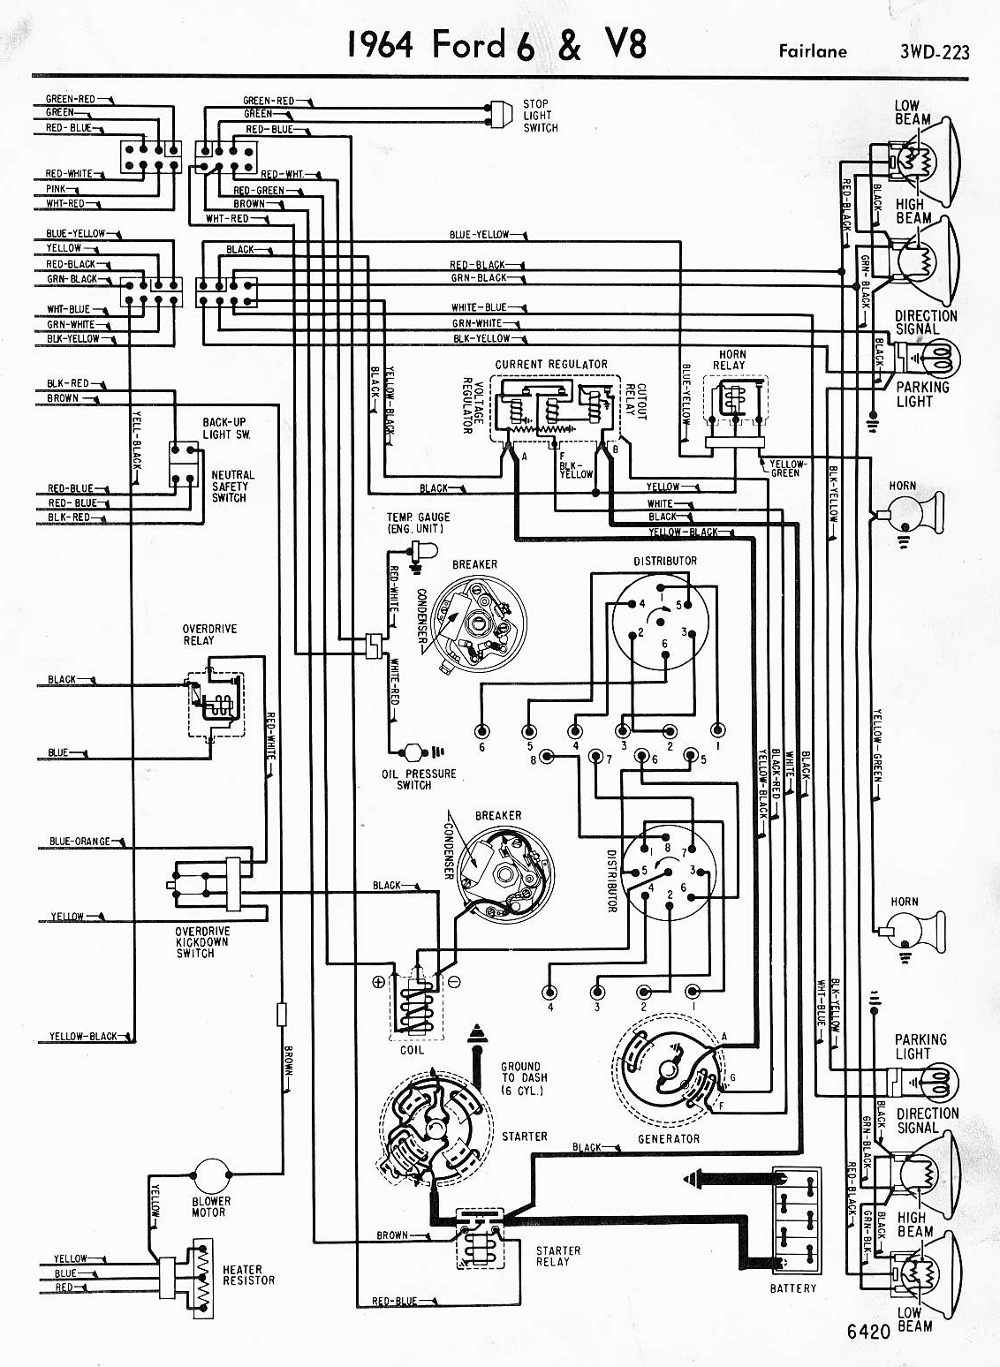 Photo Ford Wiring Diagram 1967 Ford F250 Wiring Diagram Wiring Diagram1967 Ford F100 Wiring Schematic Online Wiring Diagramf100 Wiring Diagram Bookingritzcarl Mustang Engine Diagram Wire